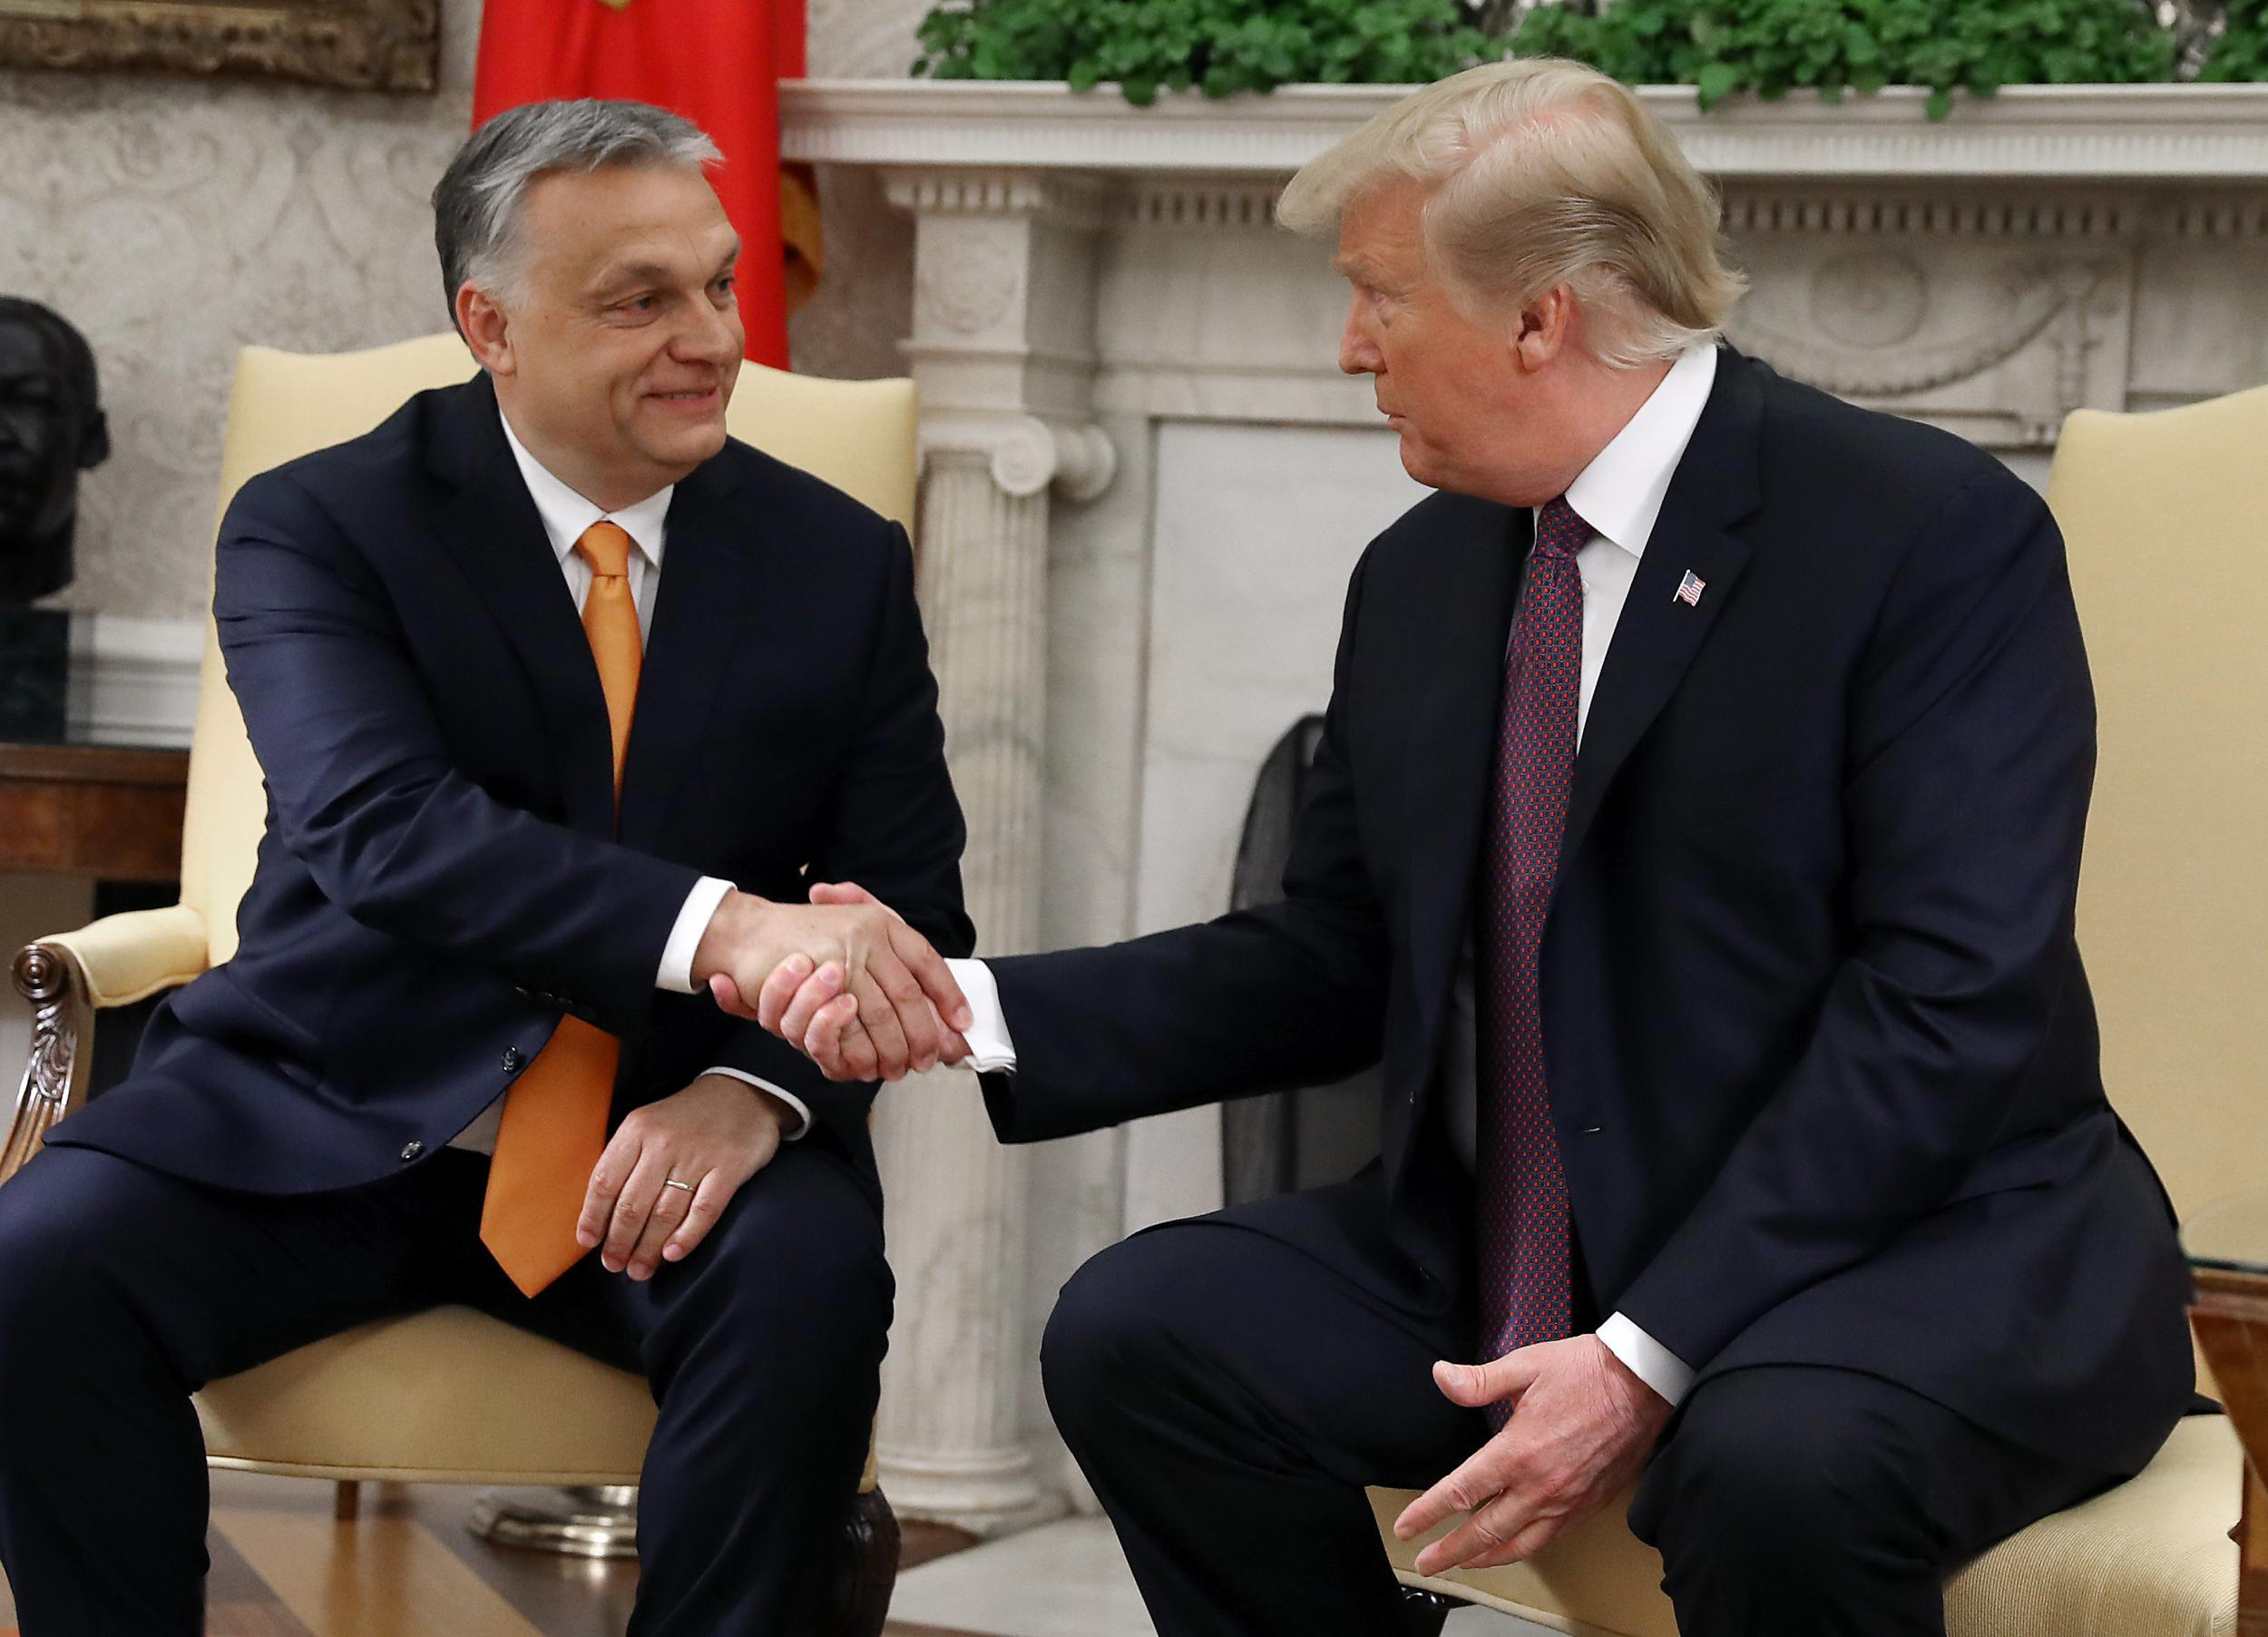 Trump says Orban doing 'tremendous job' in Hungary during White House visit despite concerns of illiberal democracy